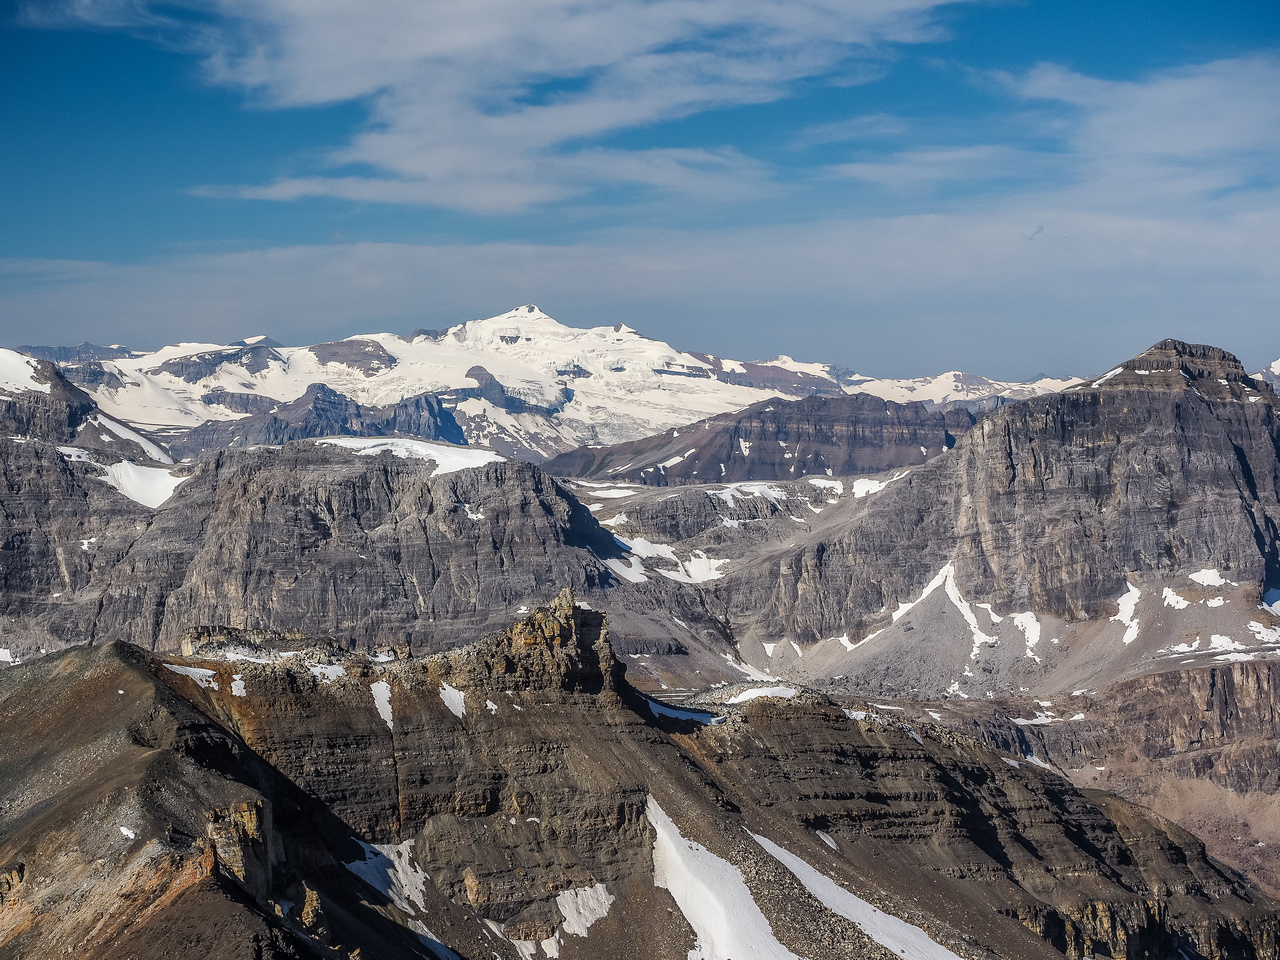 Mount Balfour - king of the Wapta Icefields - rises majestically to the west.